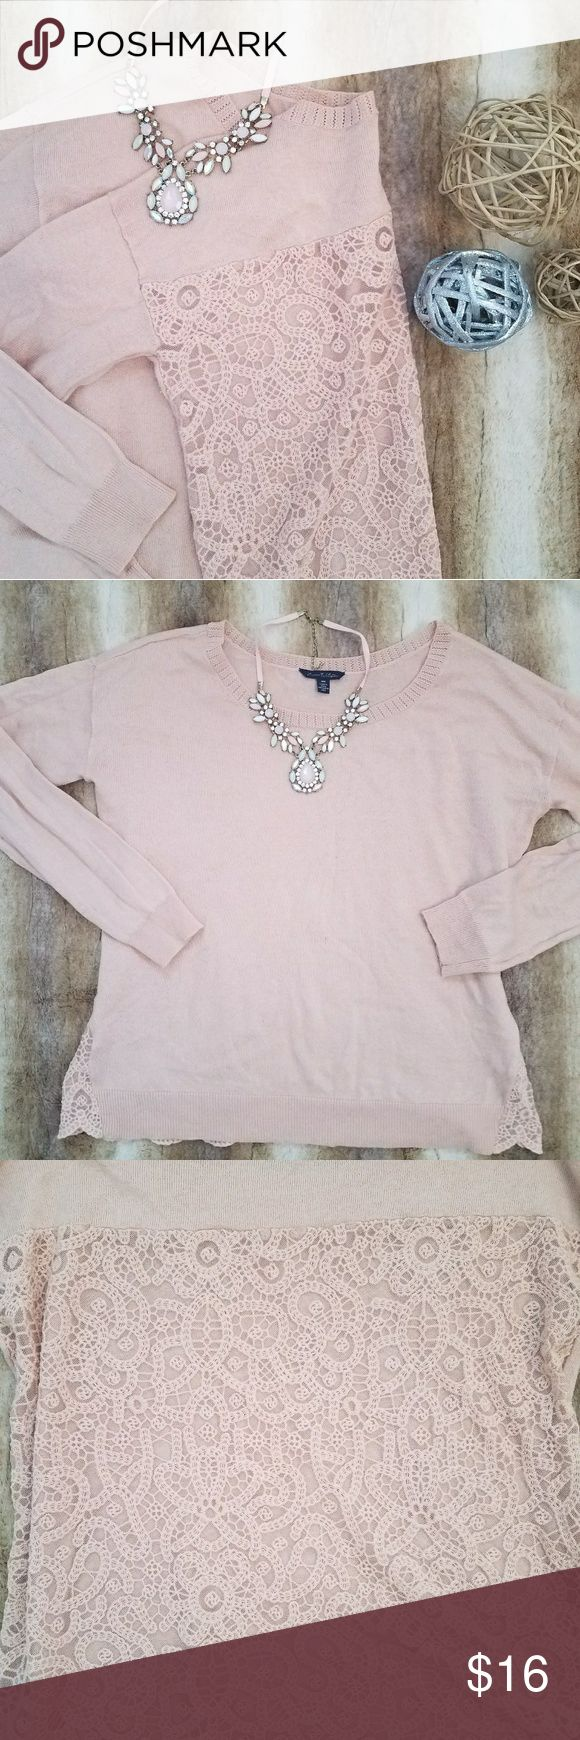 1 day sale American Eagle lace back sweater Adorable pale pink lace back sweater by American Eagle Outfitters.  Worn once. Had a small hole in the sleeve when purchased that has been repaired as shown in the last picture. In great condition. American Eagle Outfitters Tops